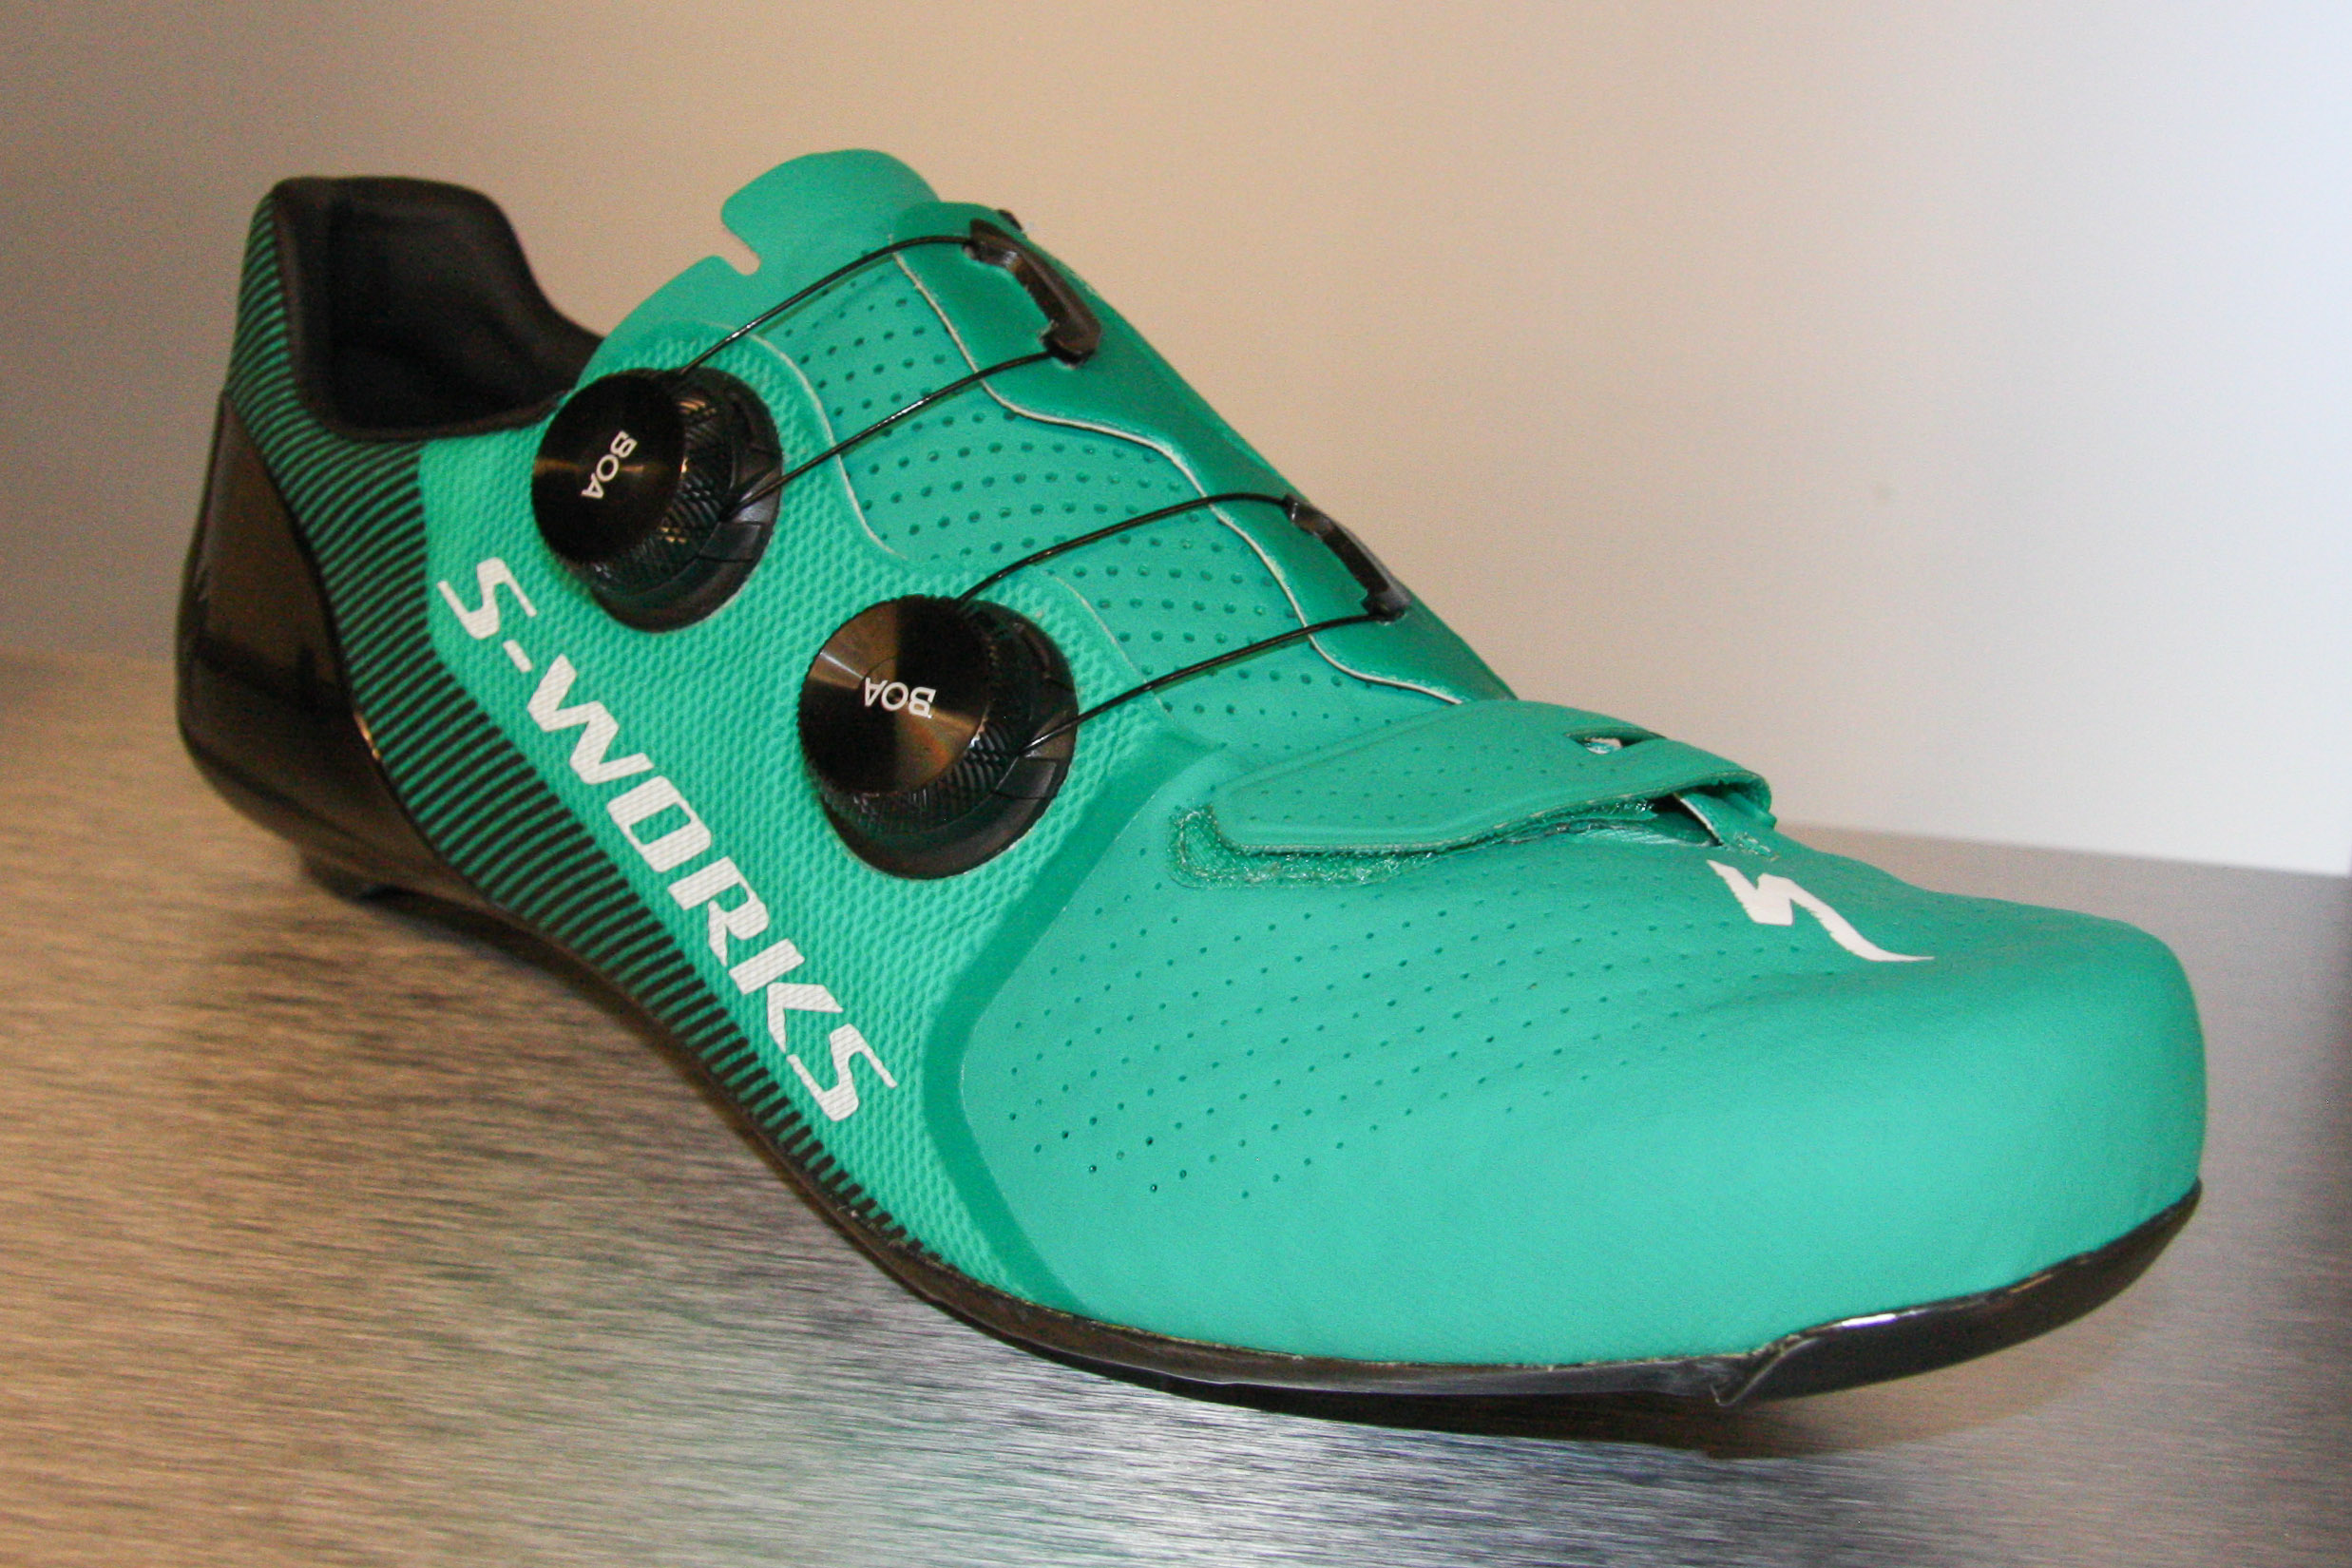 s works 7 shoes review